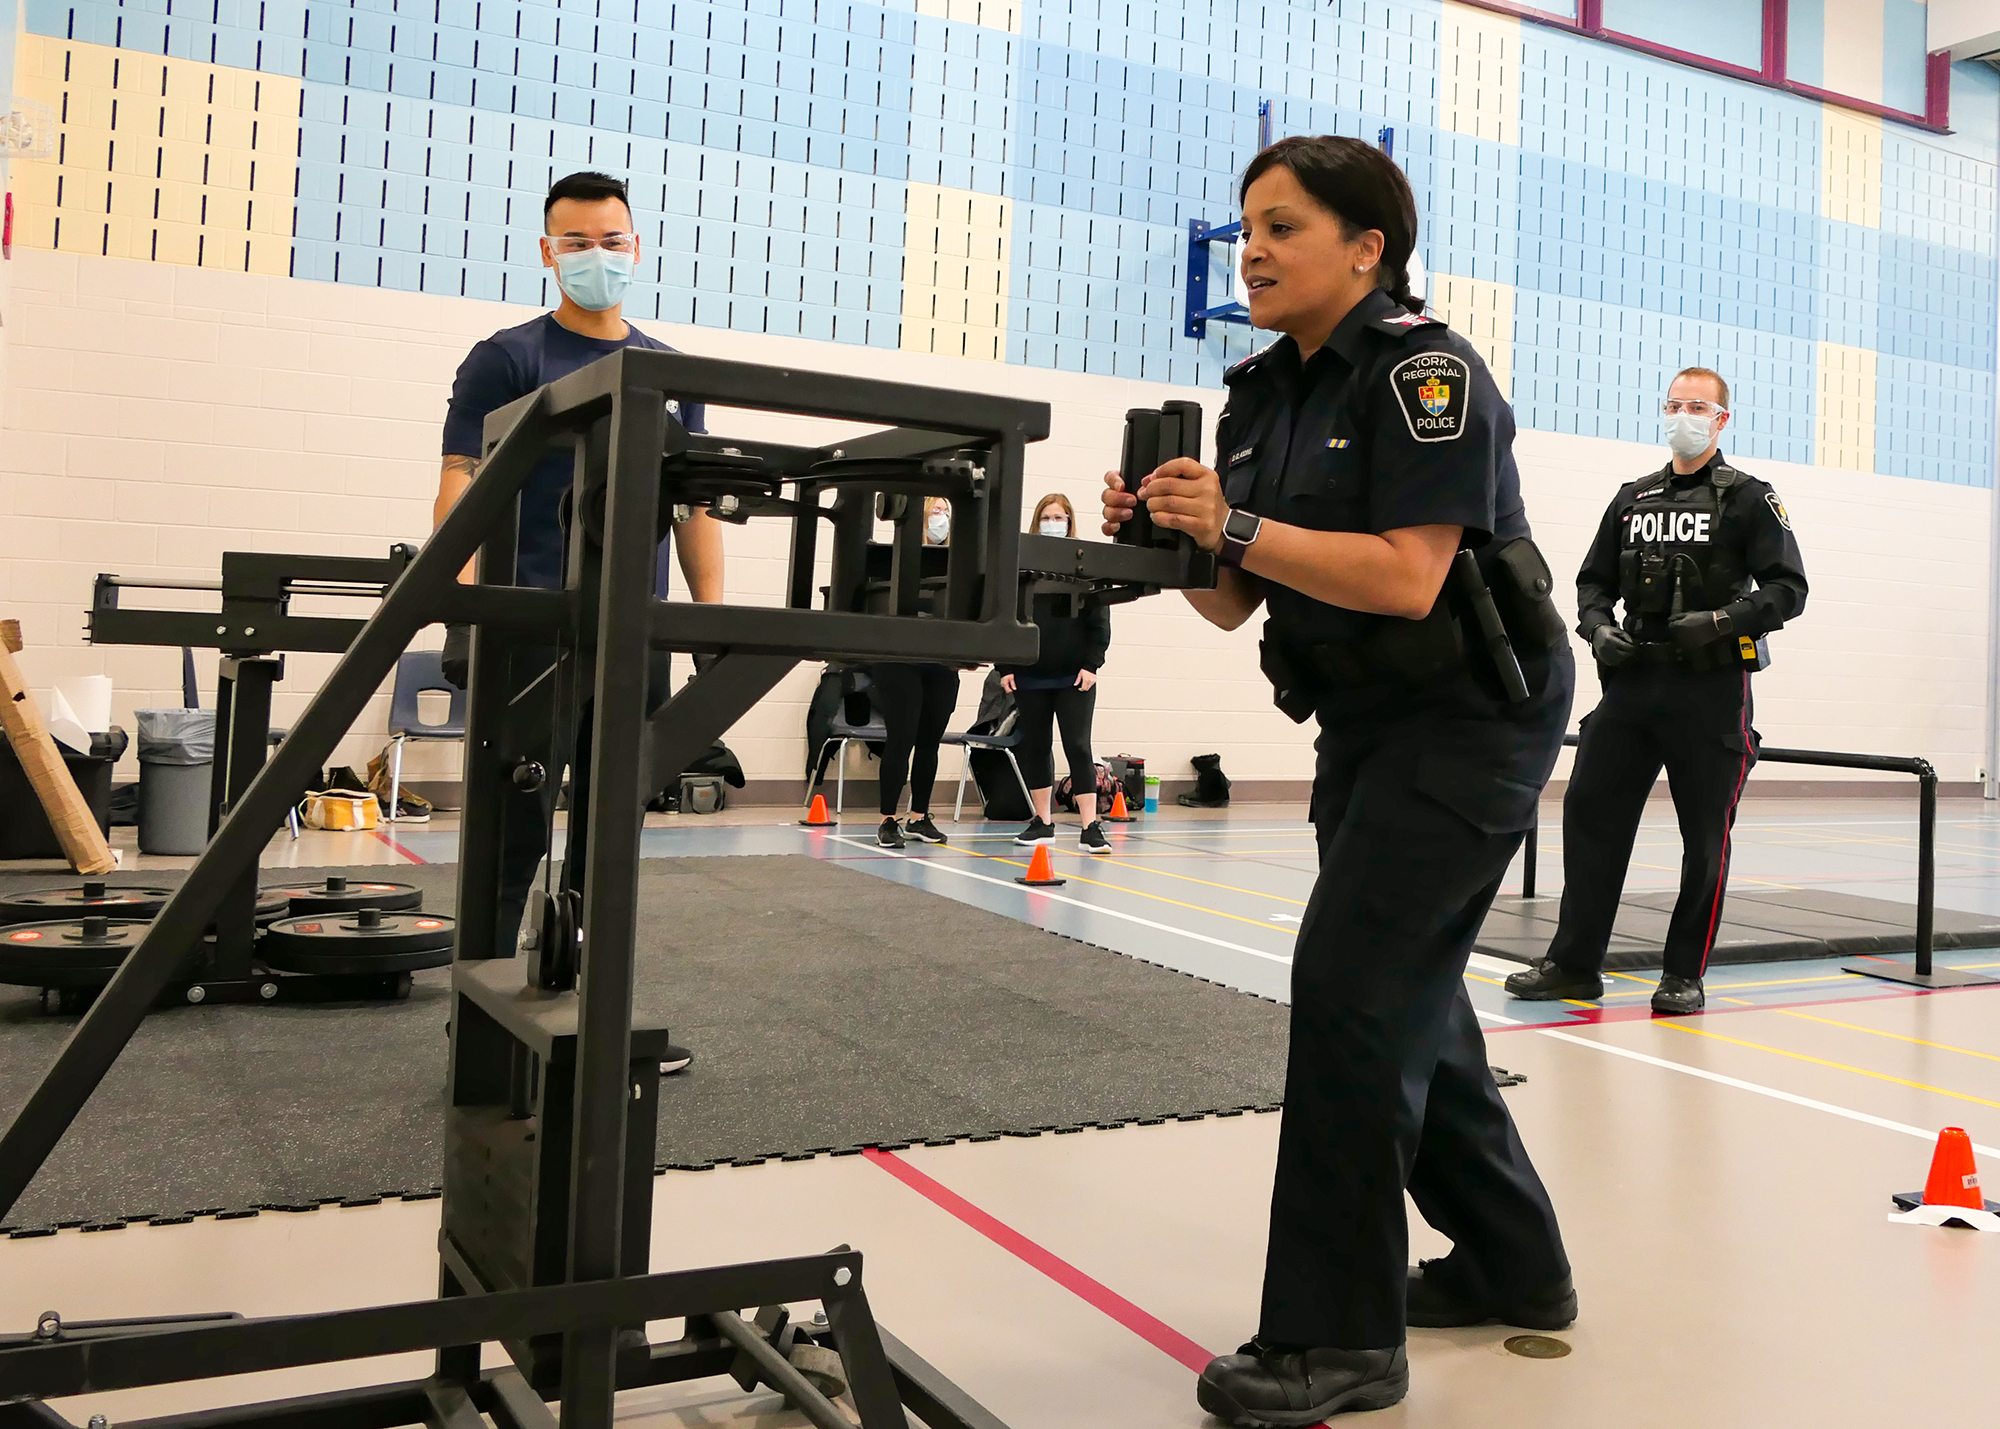 A female officer showing how to properly complete a component of a fitness test